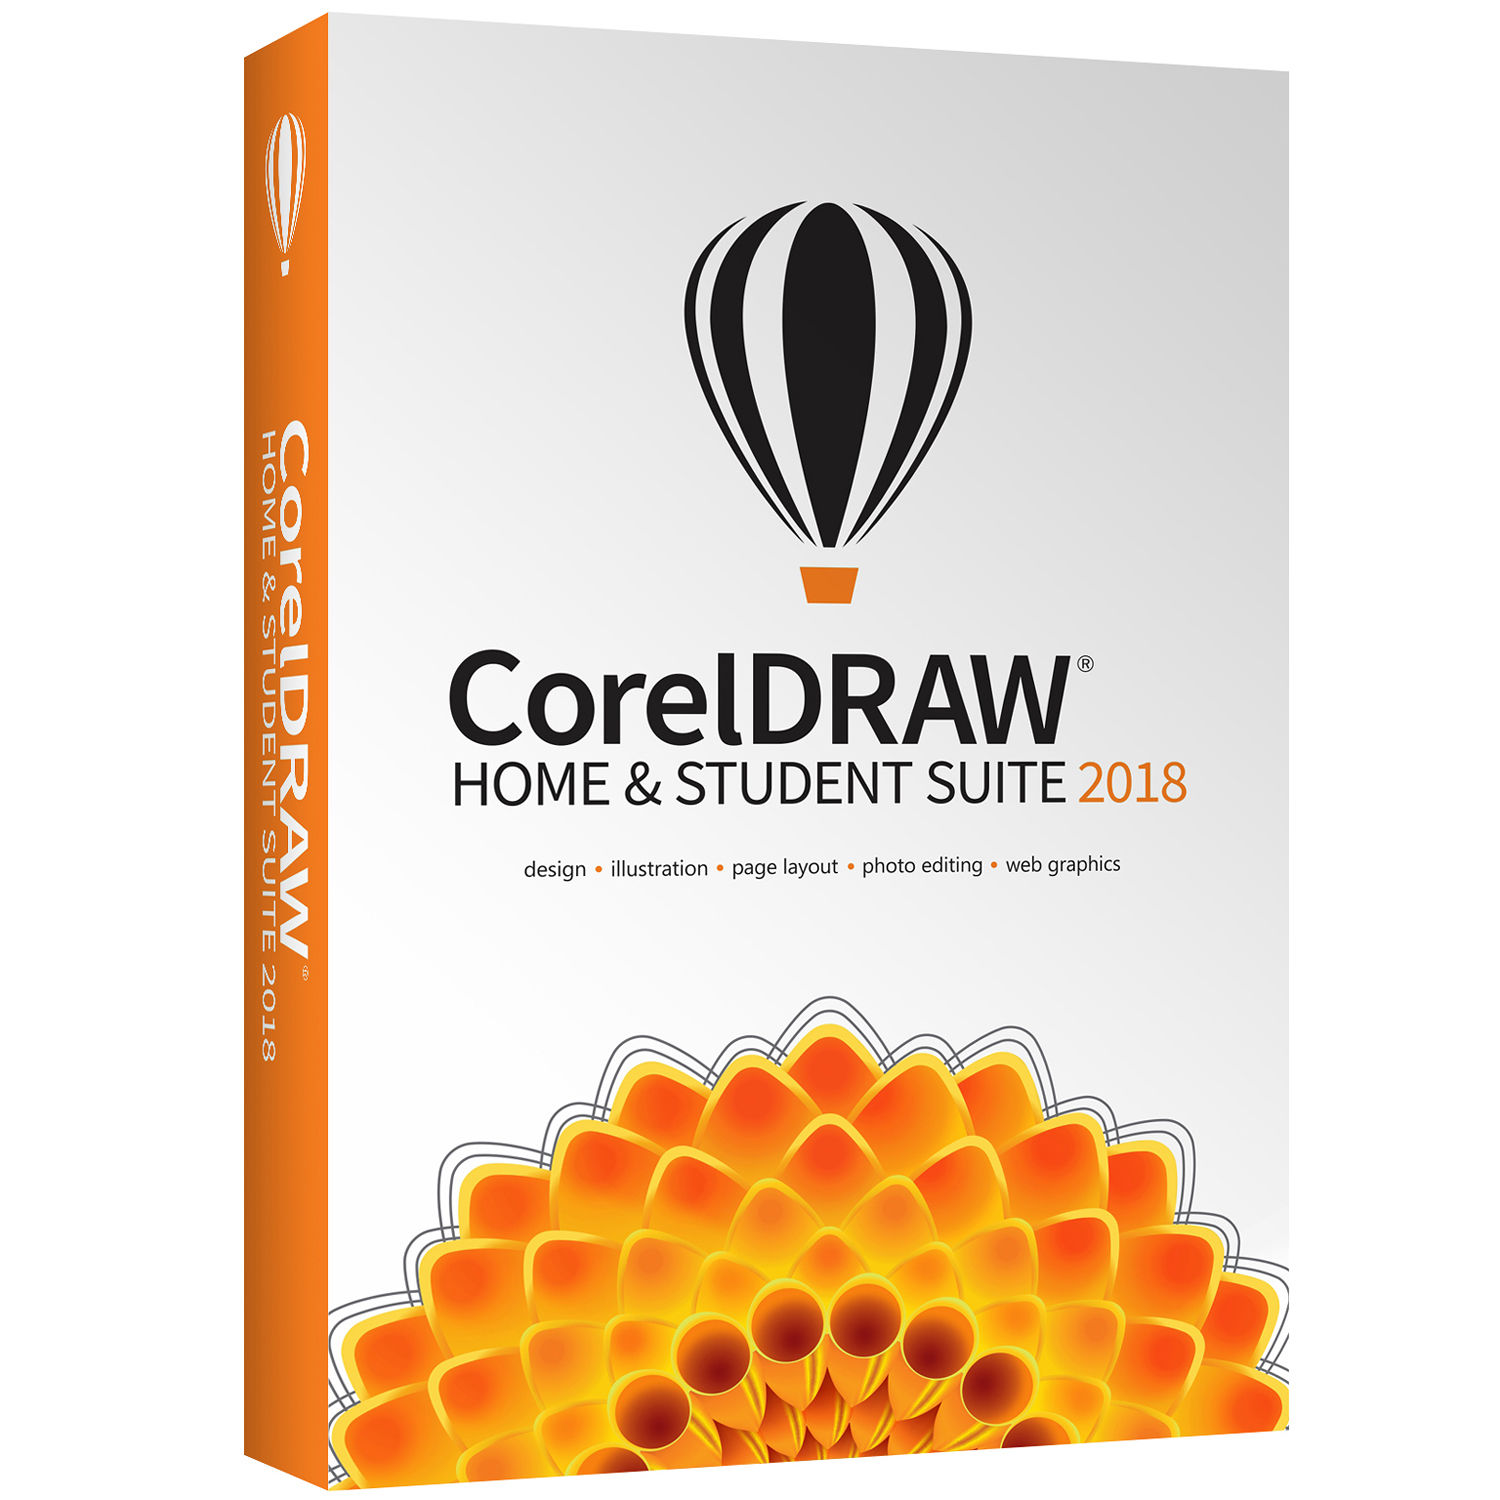 CorelDRAW Home & Student Suite 2018 (Boxed)